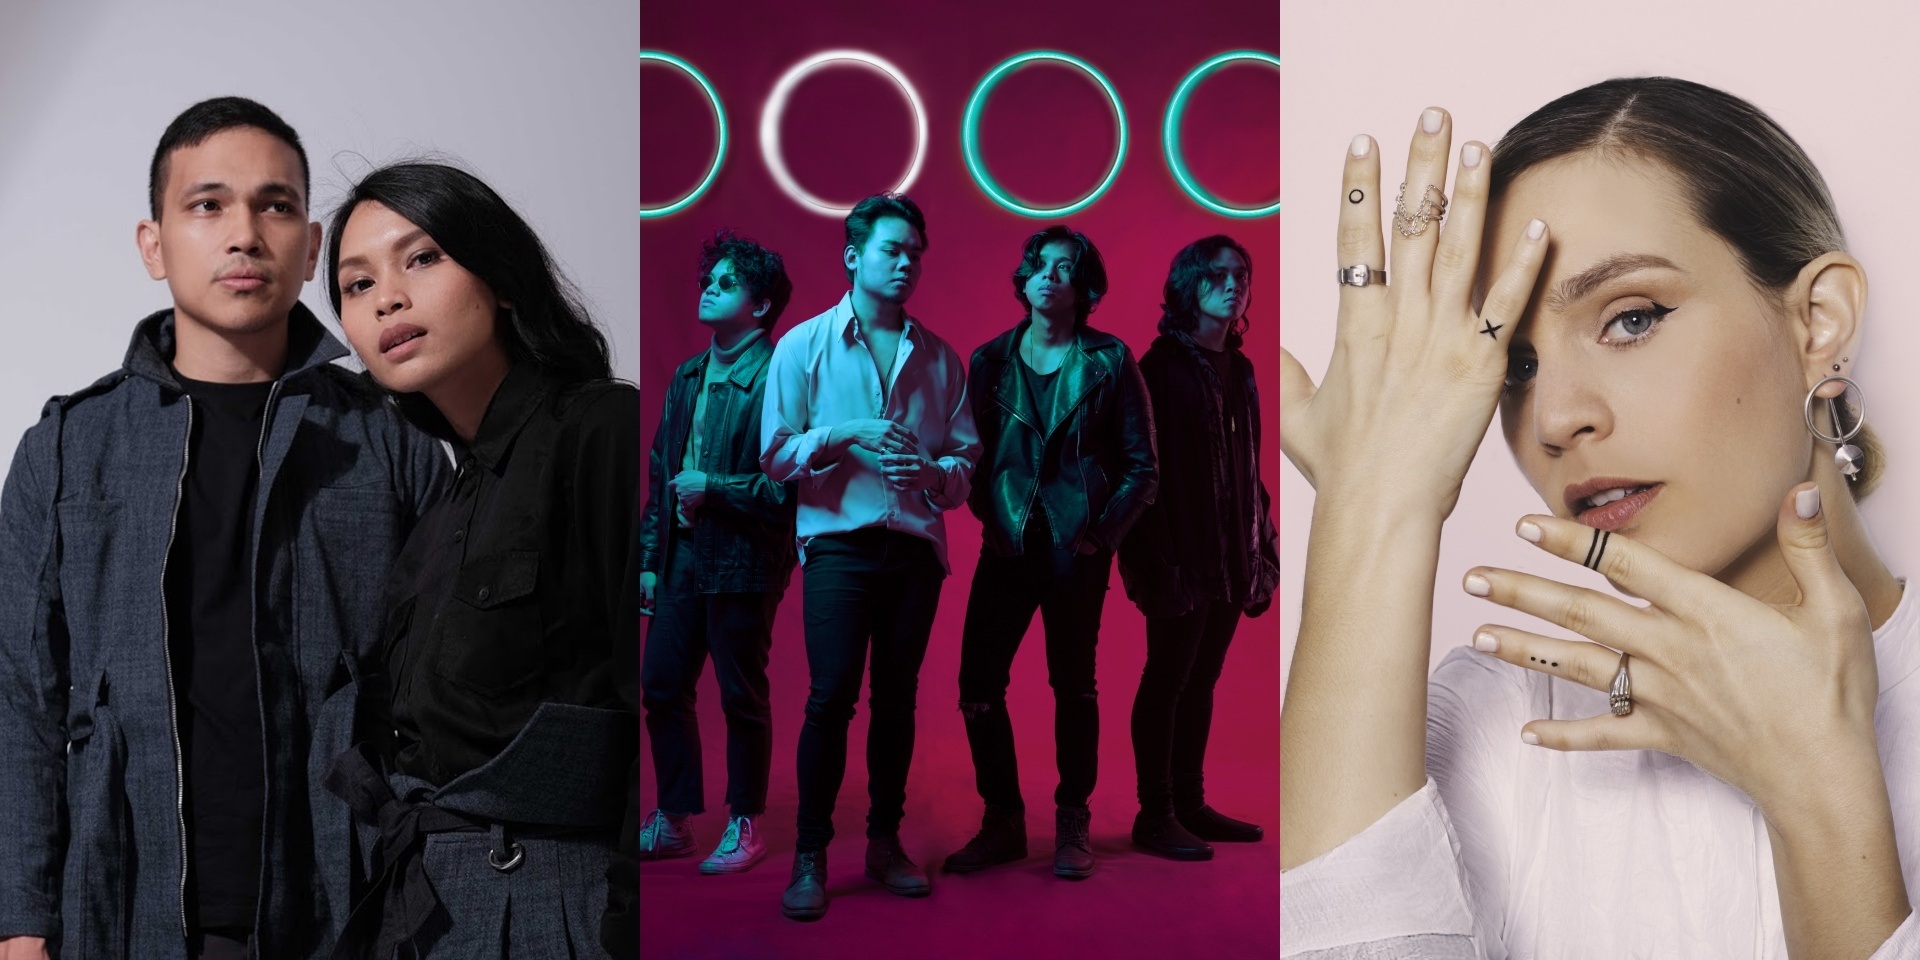 Get to know three artists performing at the Bandwagon Stage at Music Matters Live